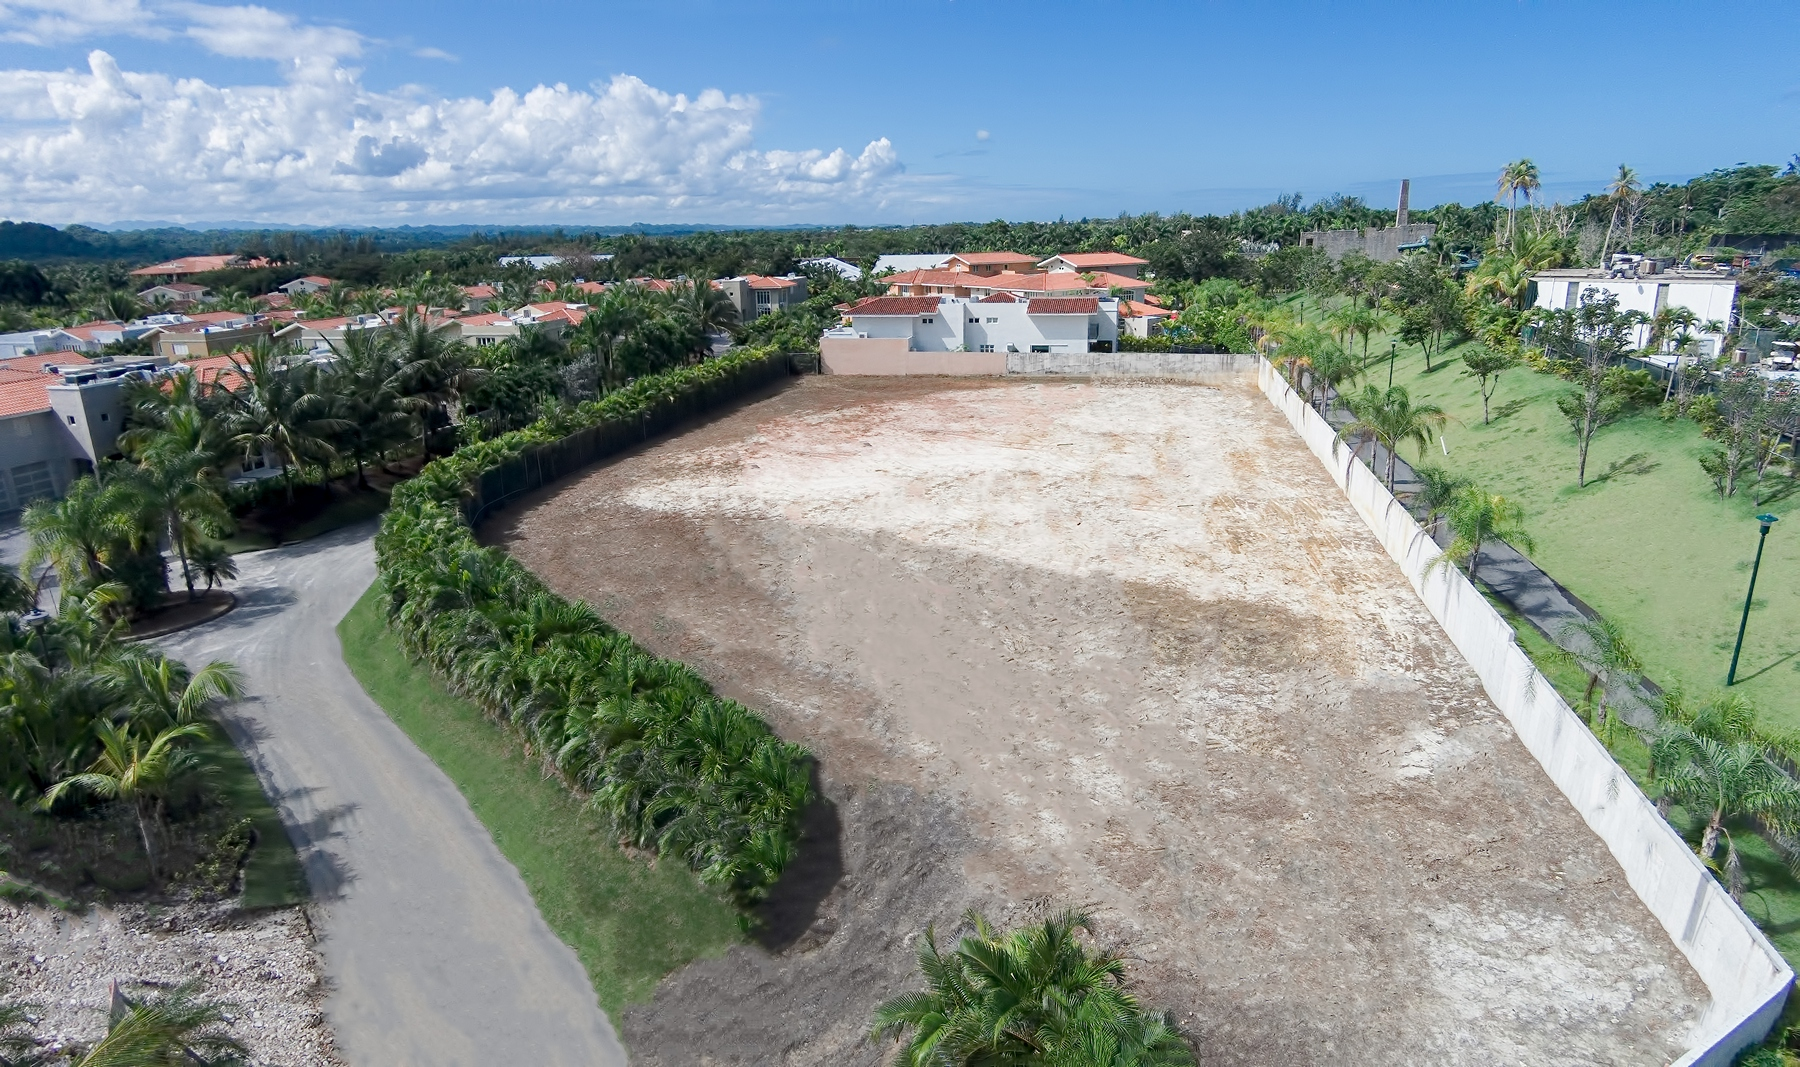 Terreno per Vendita alle ore Dorado Beach East Unique Lot Opportunity 323 Dorado Beach East Dorado Beach, Puerto Rico 00646 Porto Rico